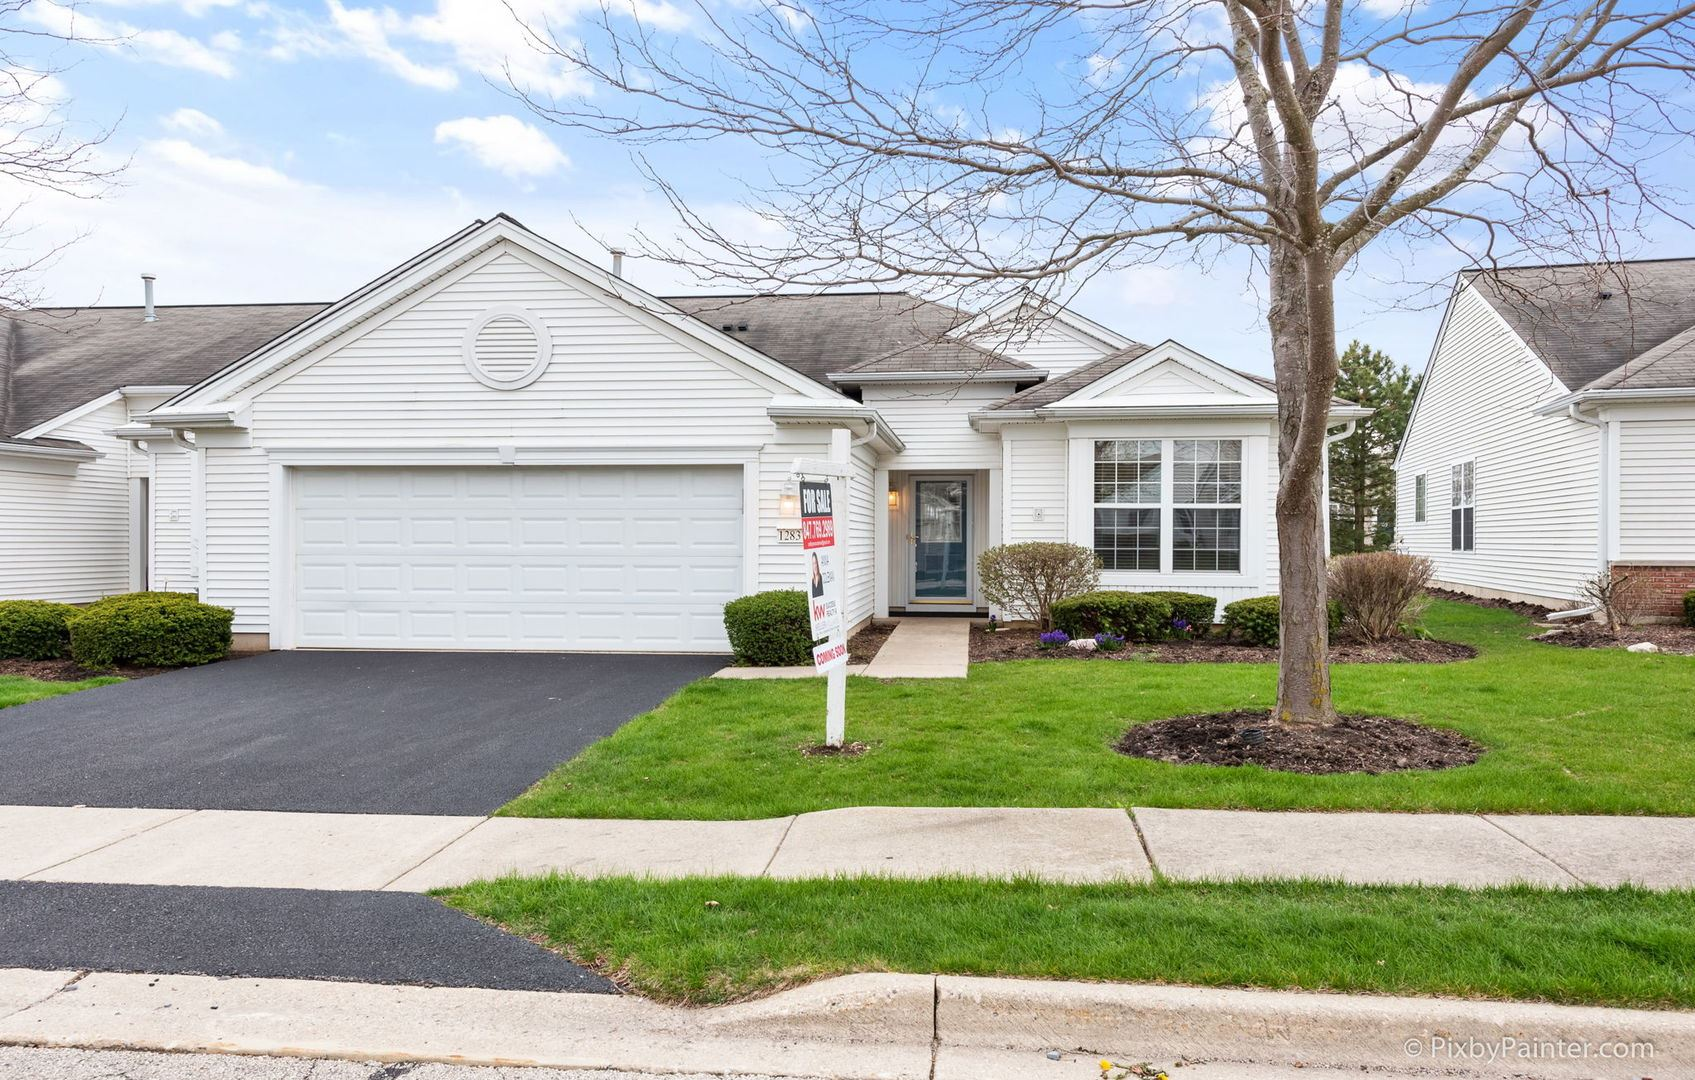 12837 NORFOLK Drive, Huntley, IL 60142 - #: 10698119